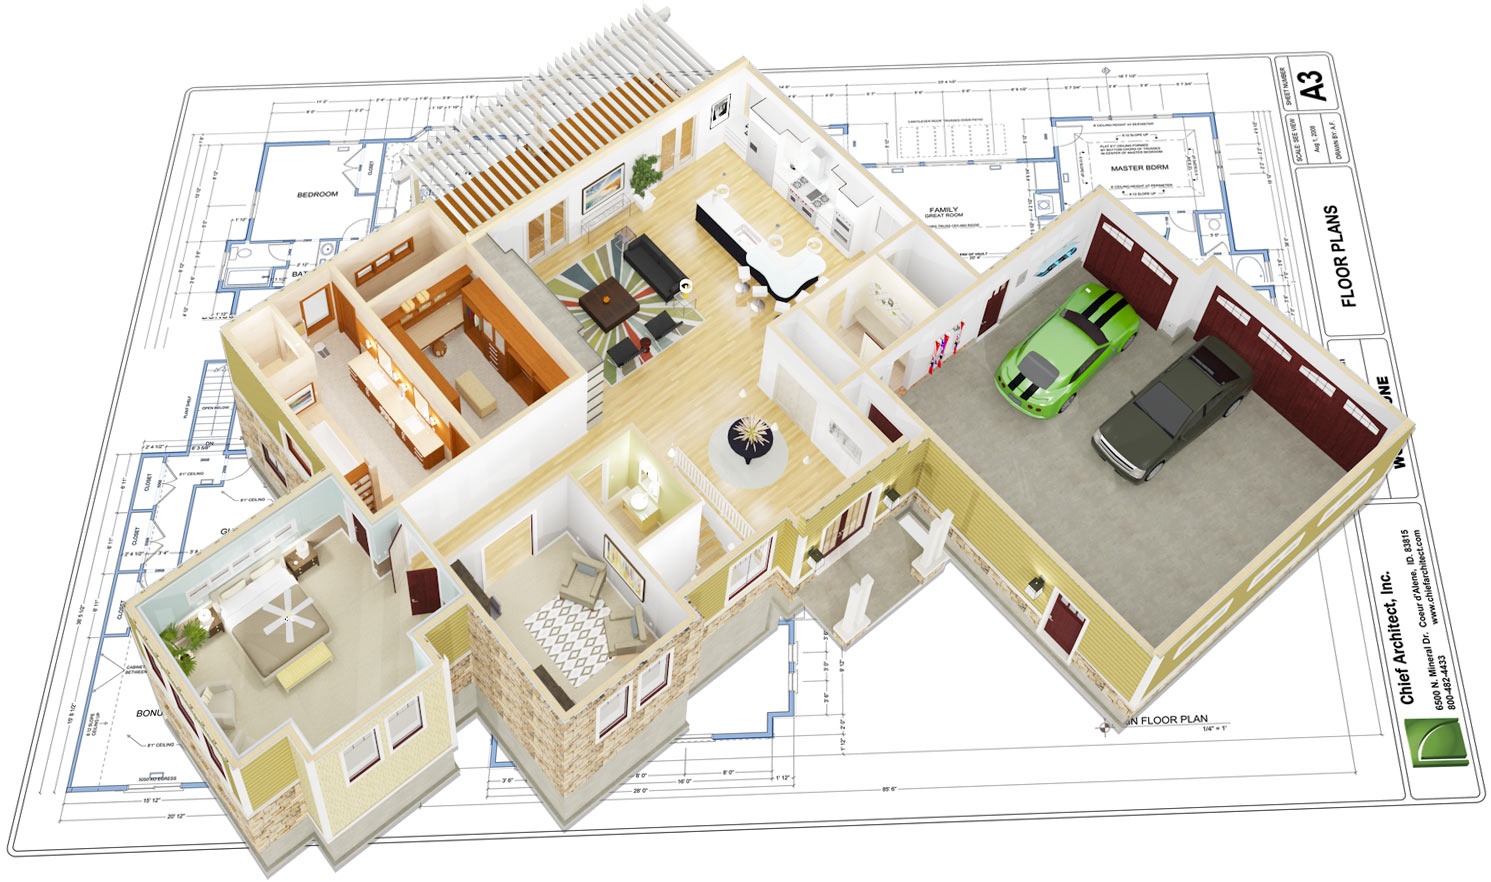 Chief architect interior software for professional Building design tool